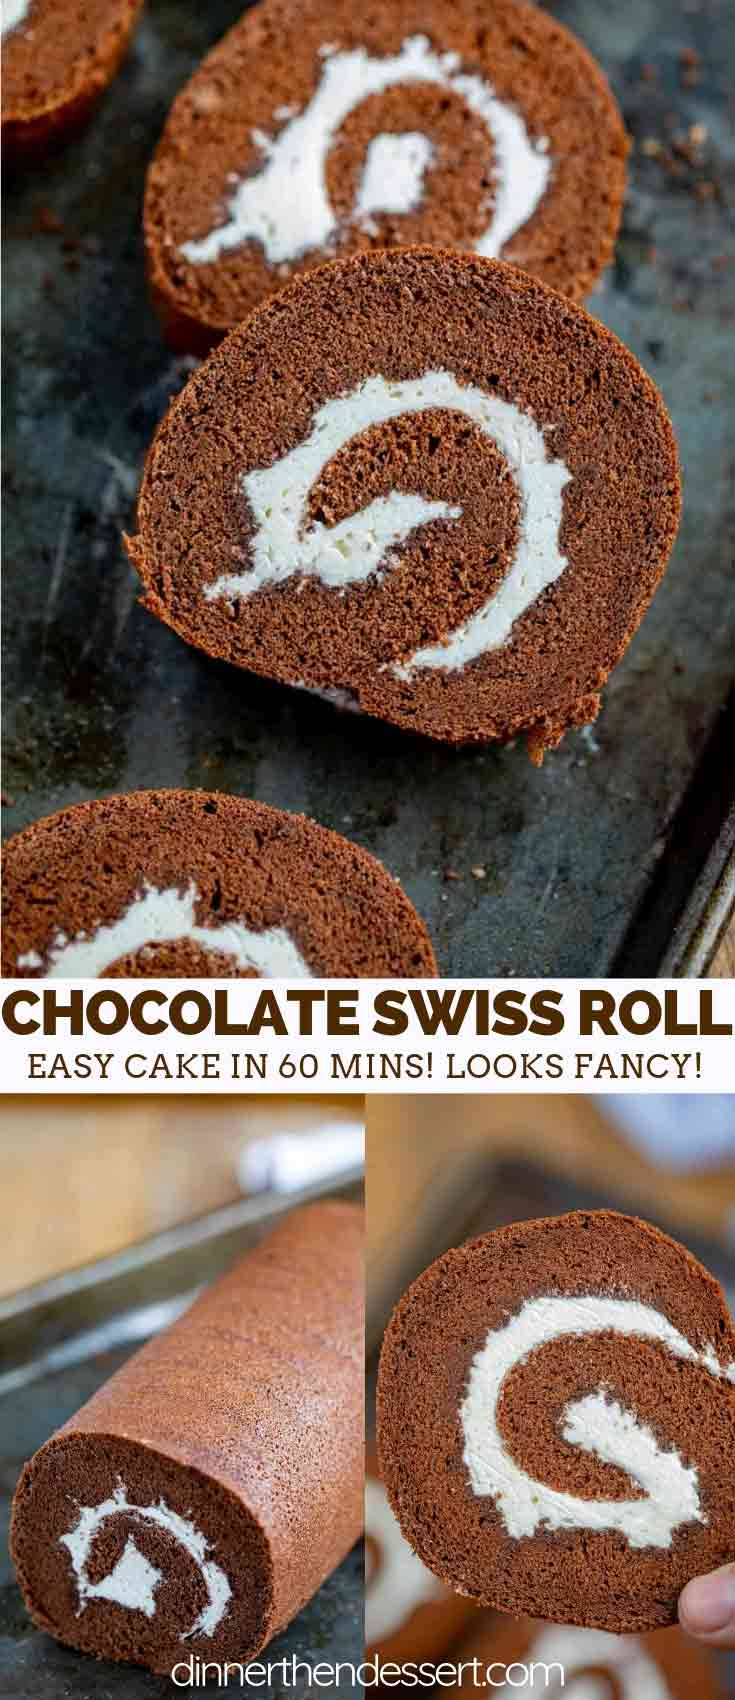 Swiss Roll with Chocolate Cake and Whipped Cream